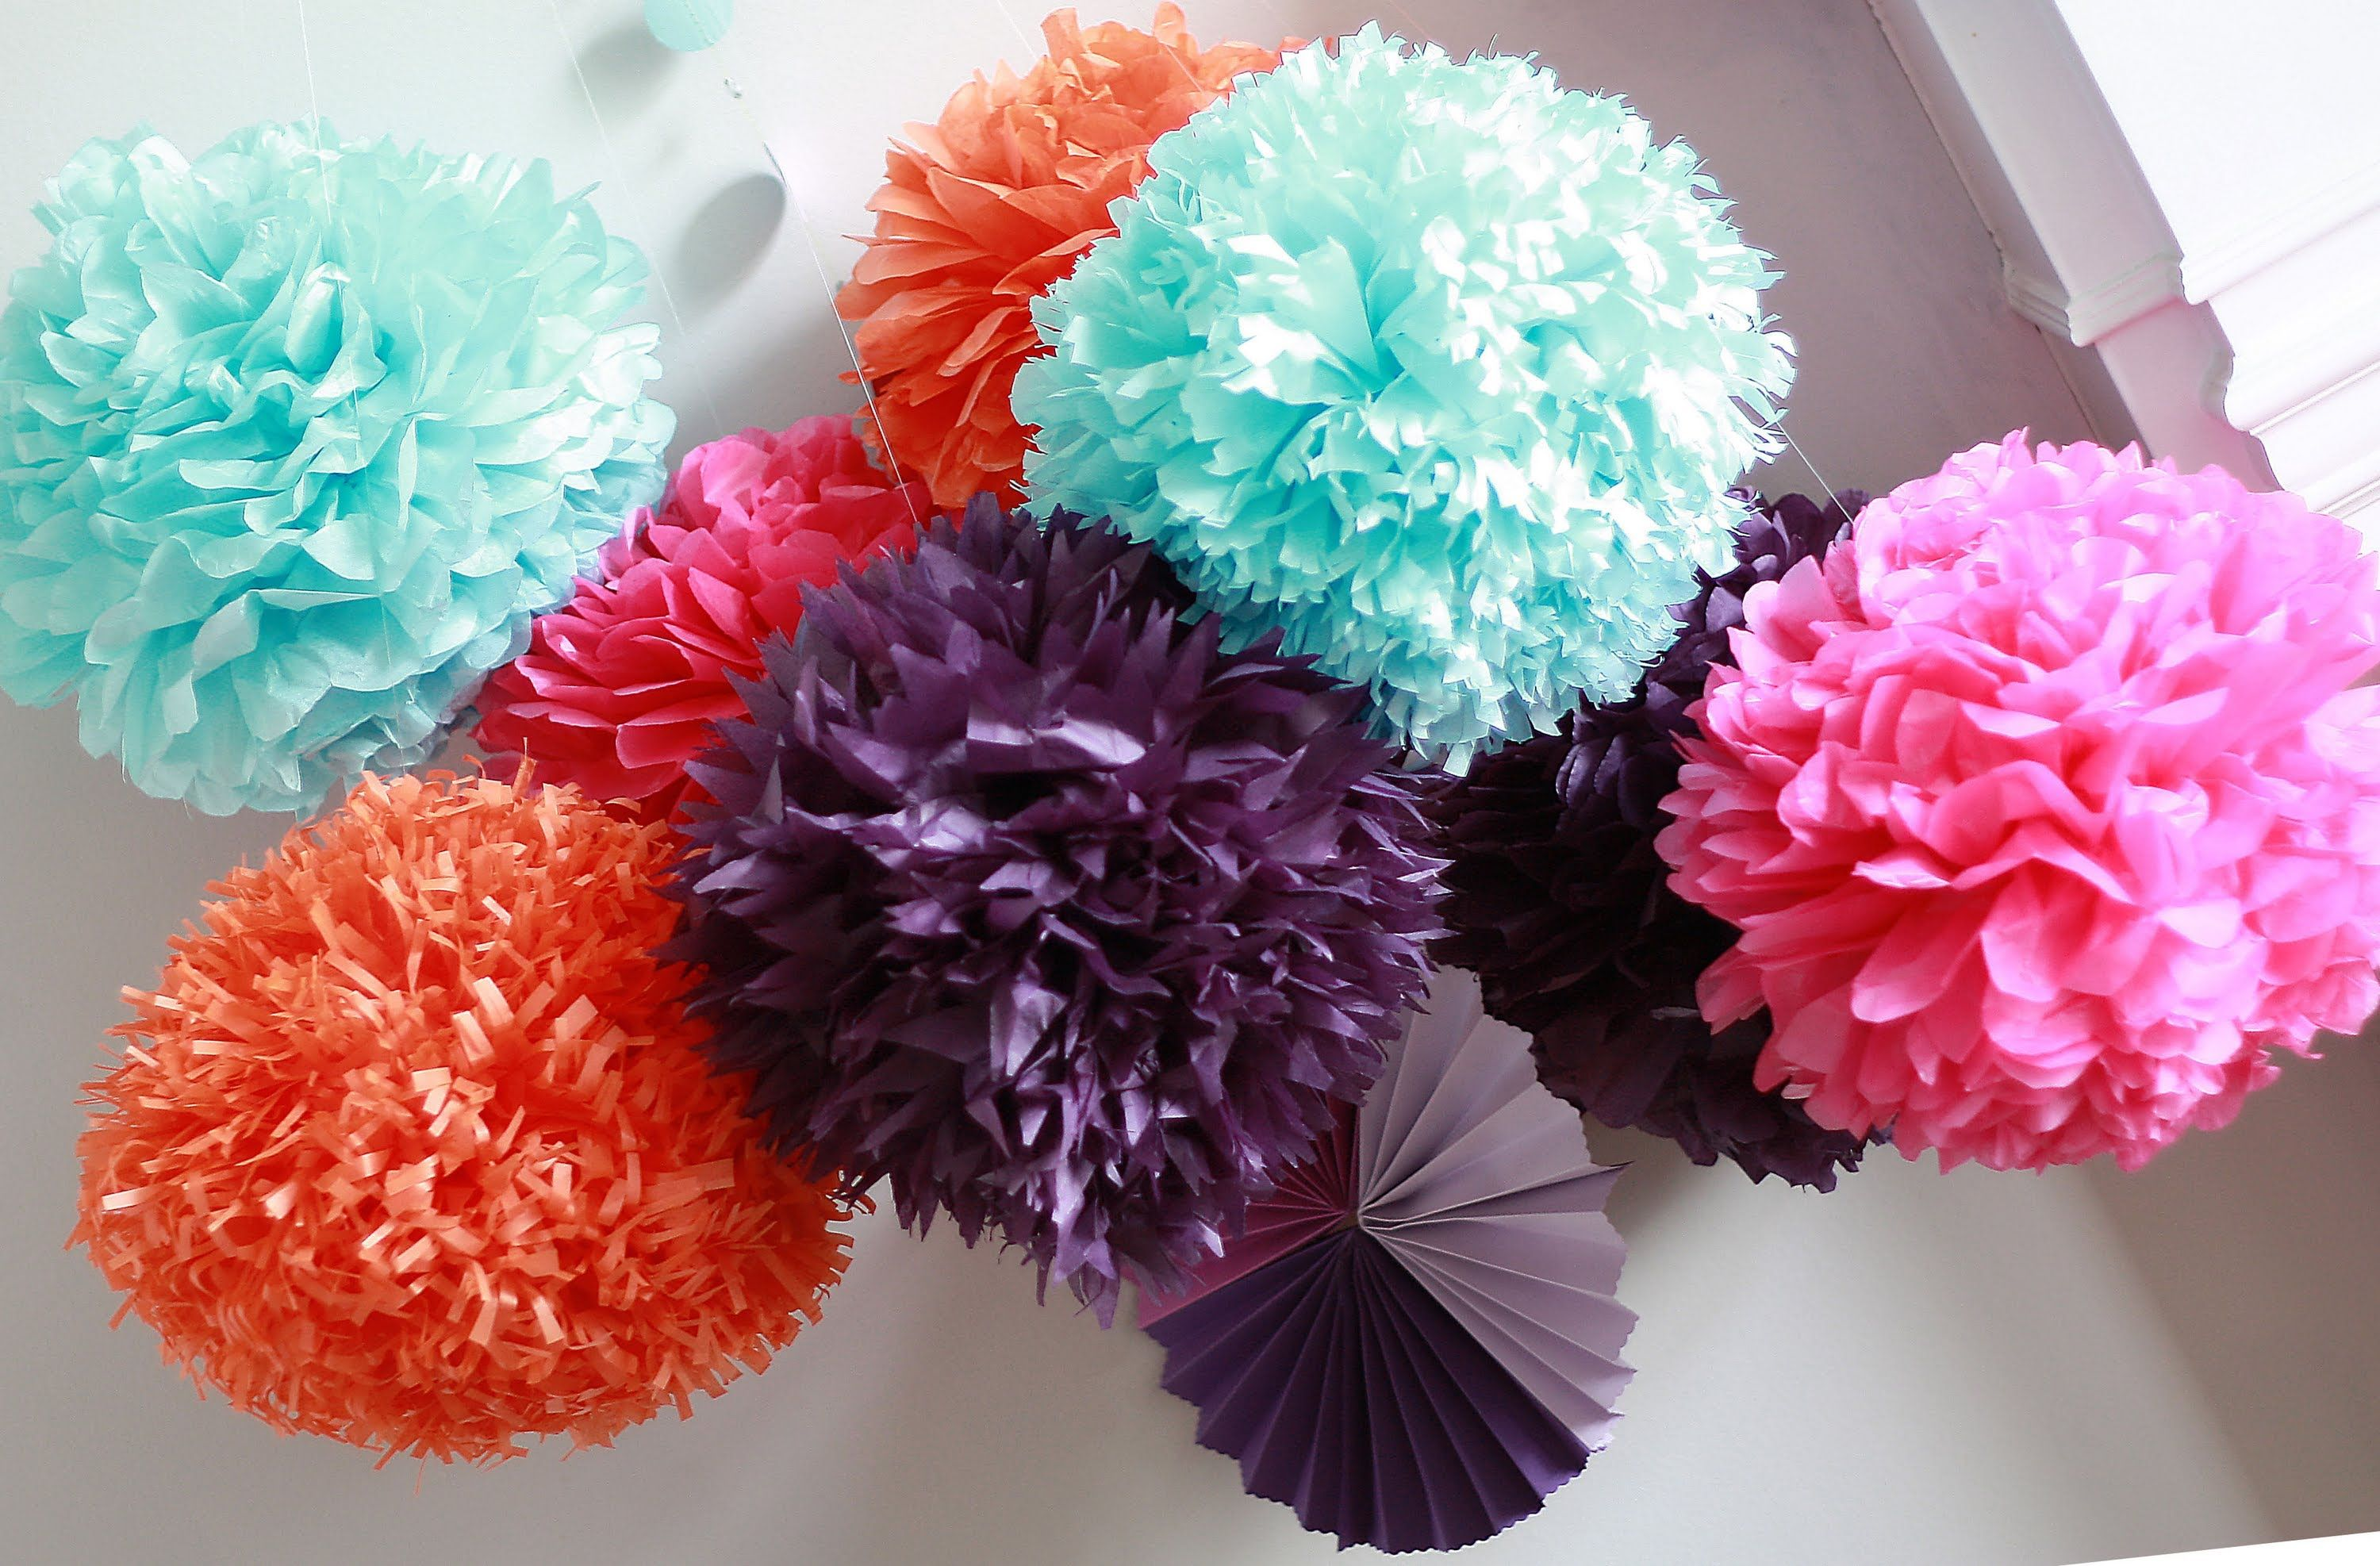 Tissue Paper Ball Decorations How To Diy Paper Pom Tutoriala Very Simple Tutorial On Making